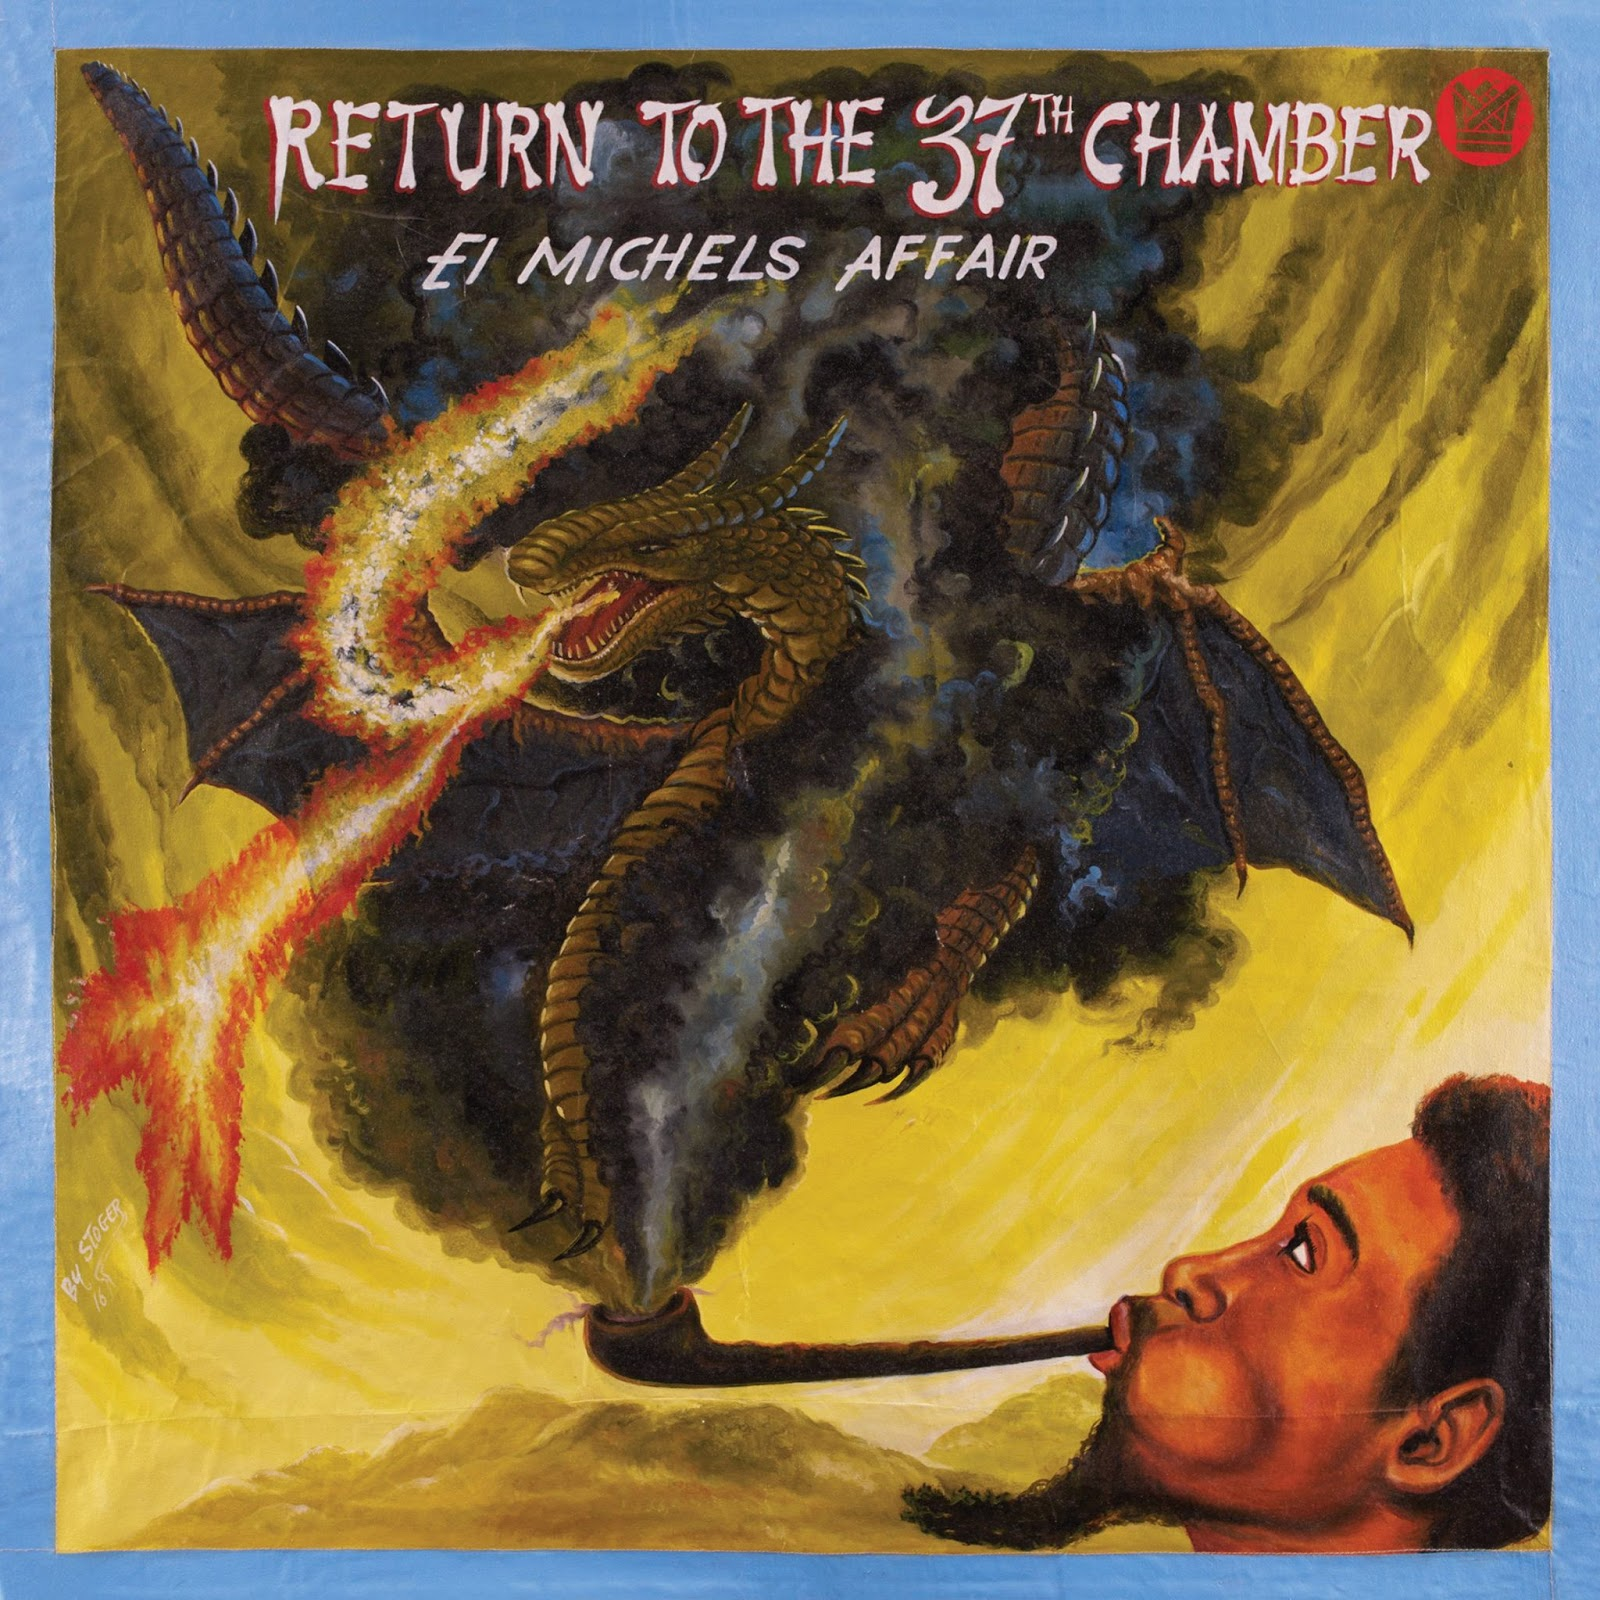 Return To The 37th Chamber von  El Michels Affair | Dein Soundtrack für die kommende Woche